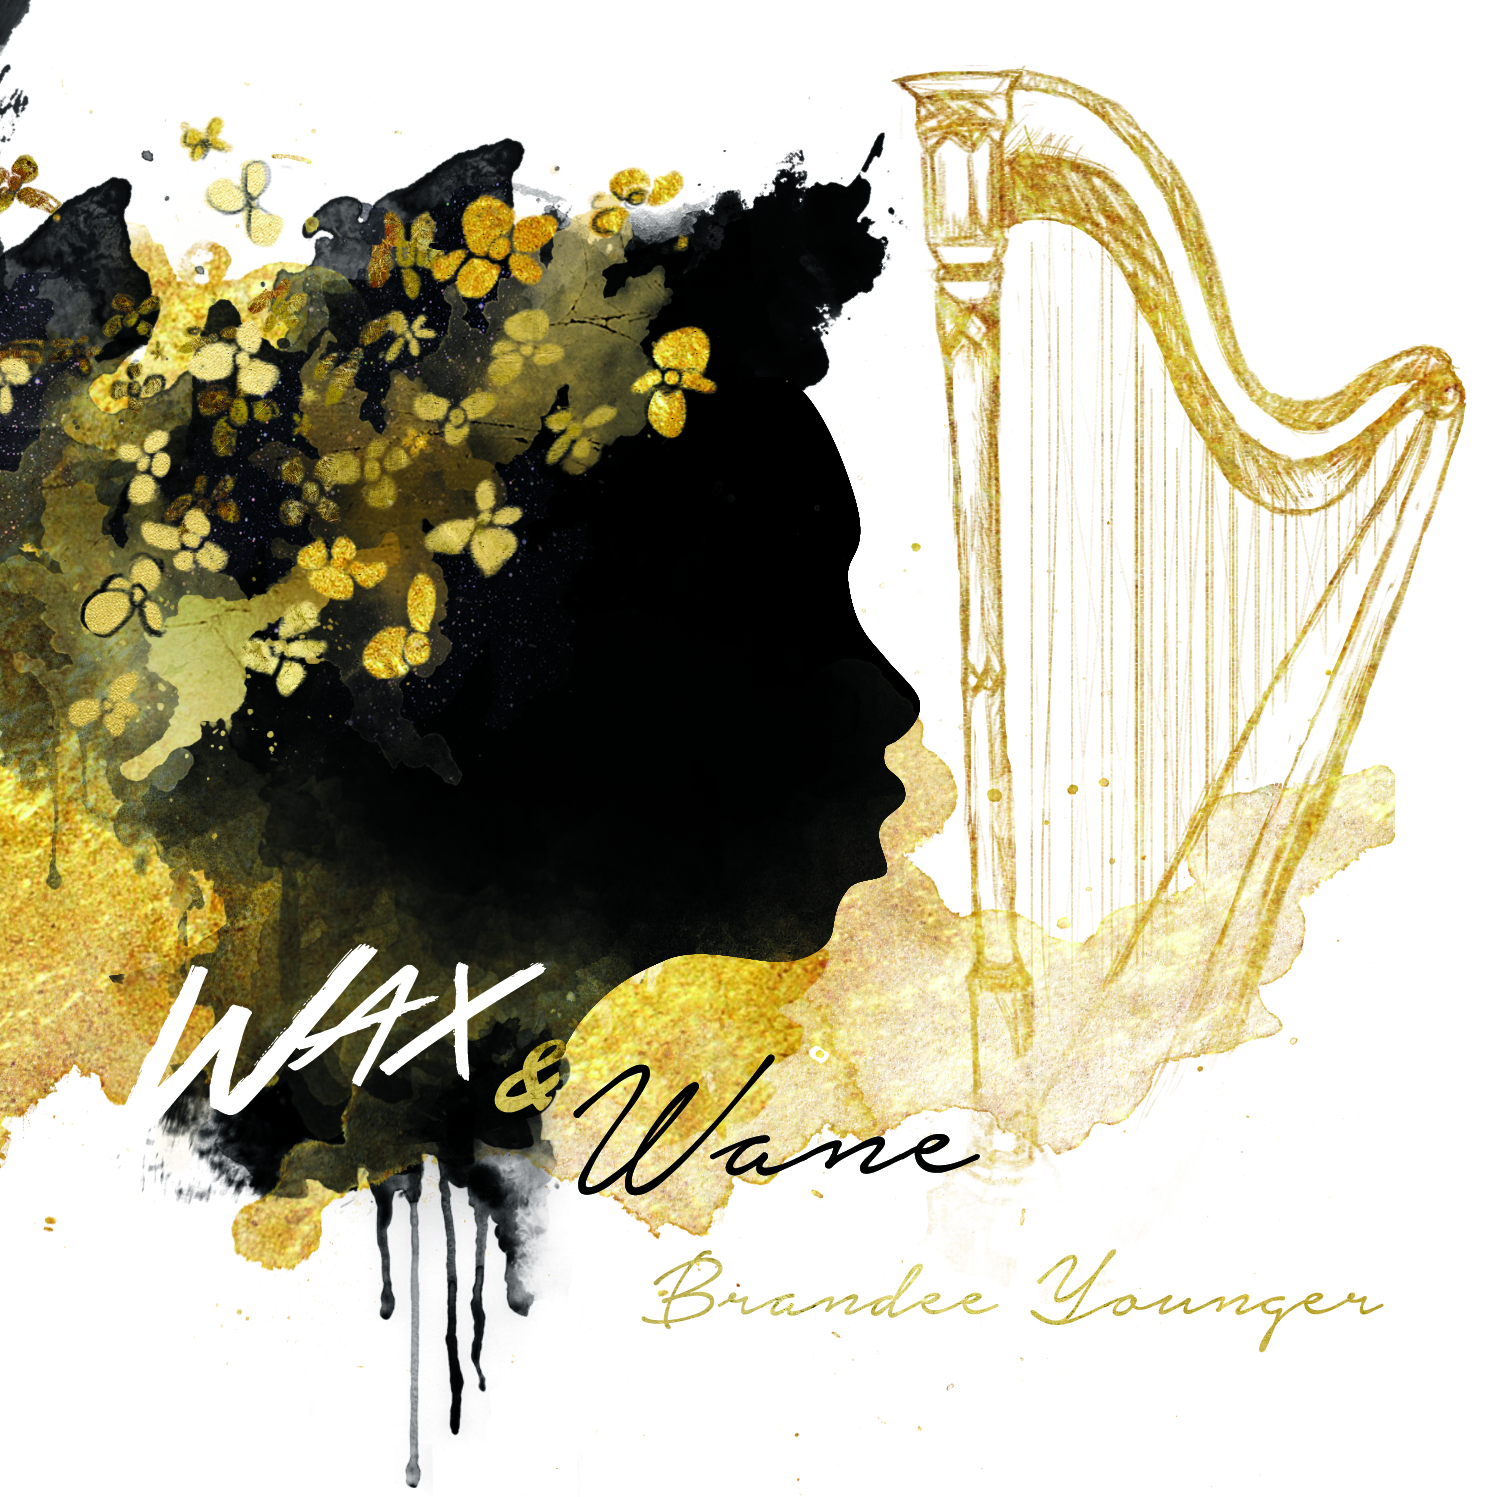 Brandee Younger's Wax & Wane Reviewed in Downbeat